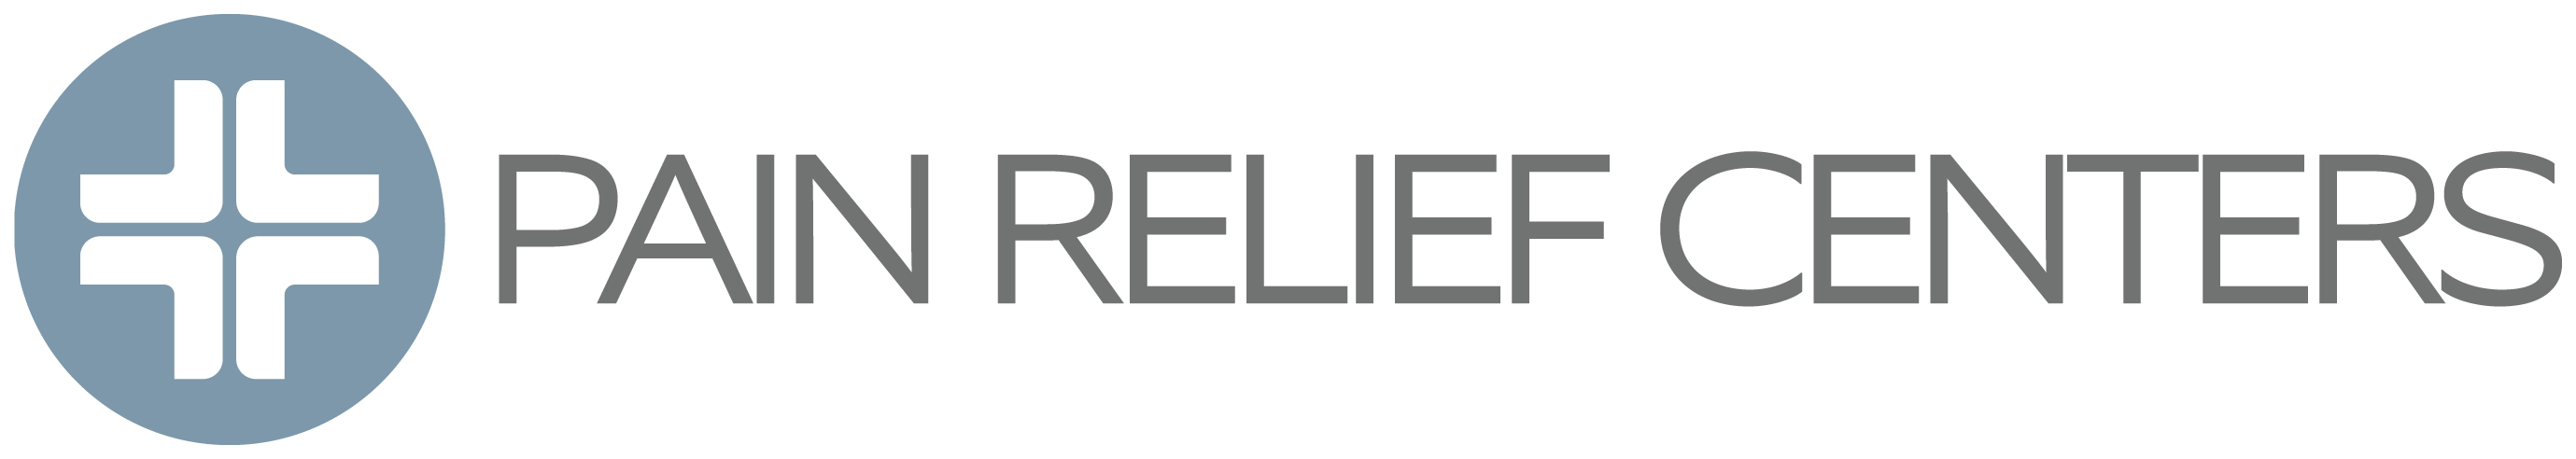 Pain Relief Centers Logo